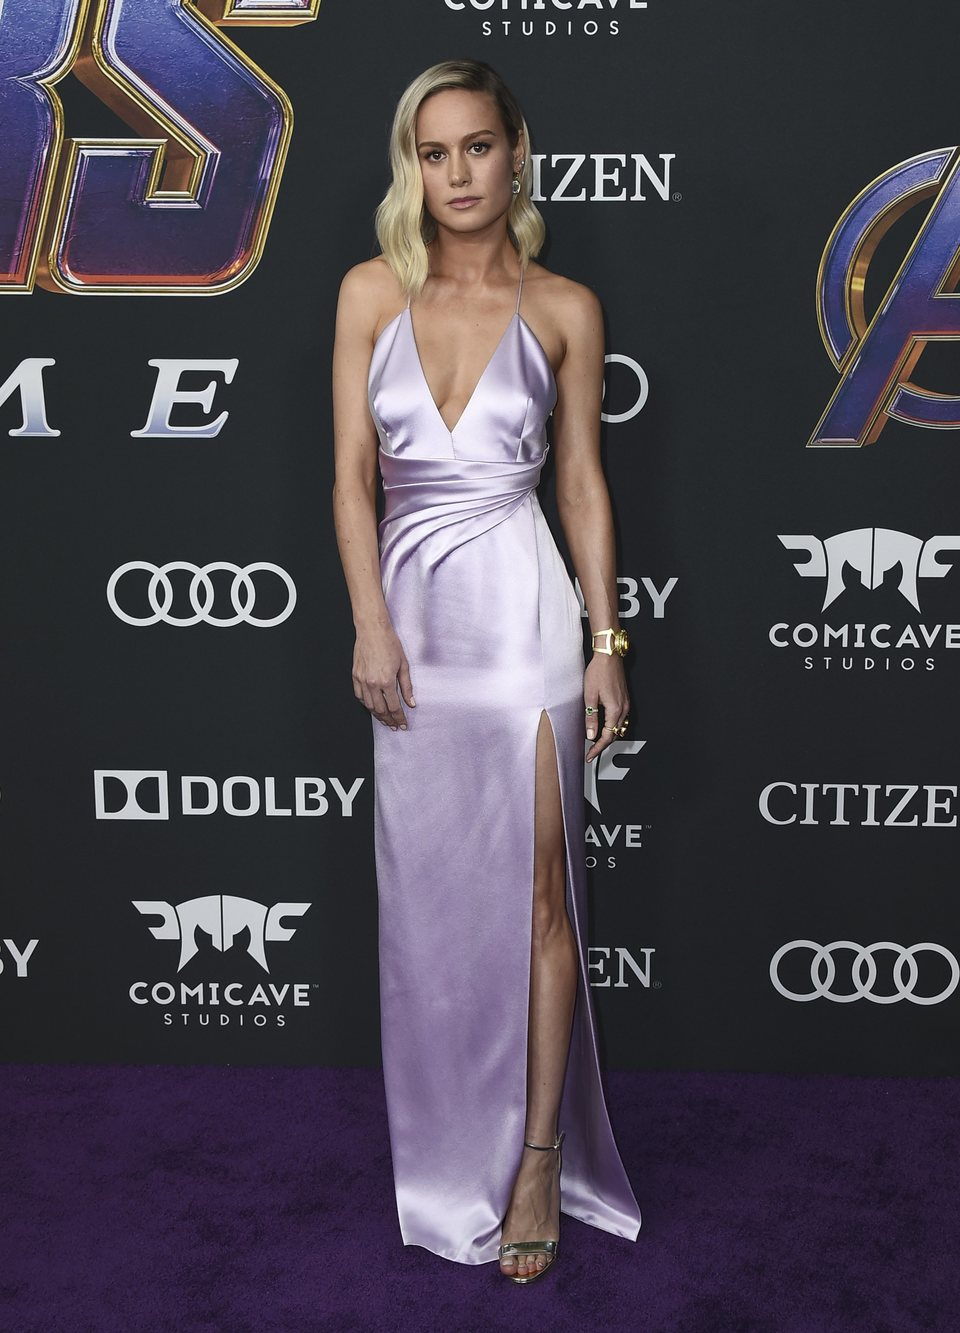 Brie Larson on the red carpet of 'Avengers: Endgame'